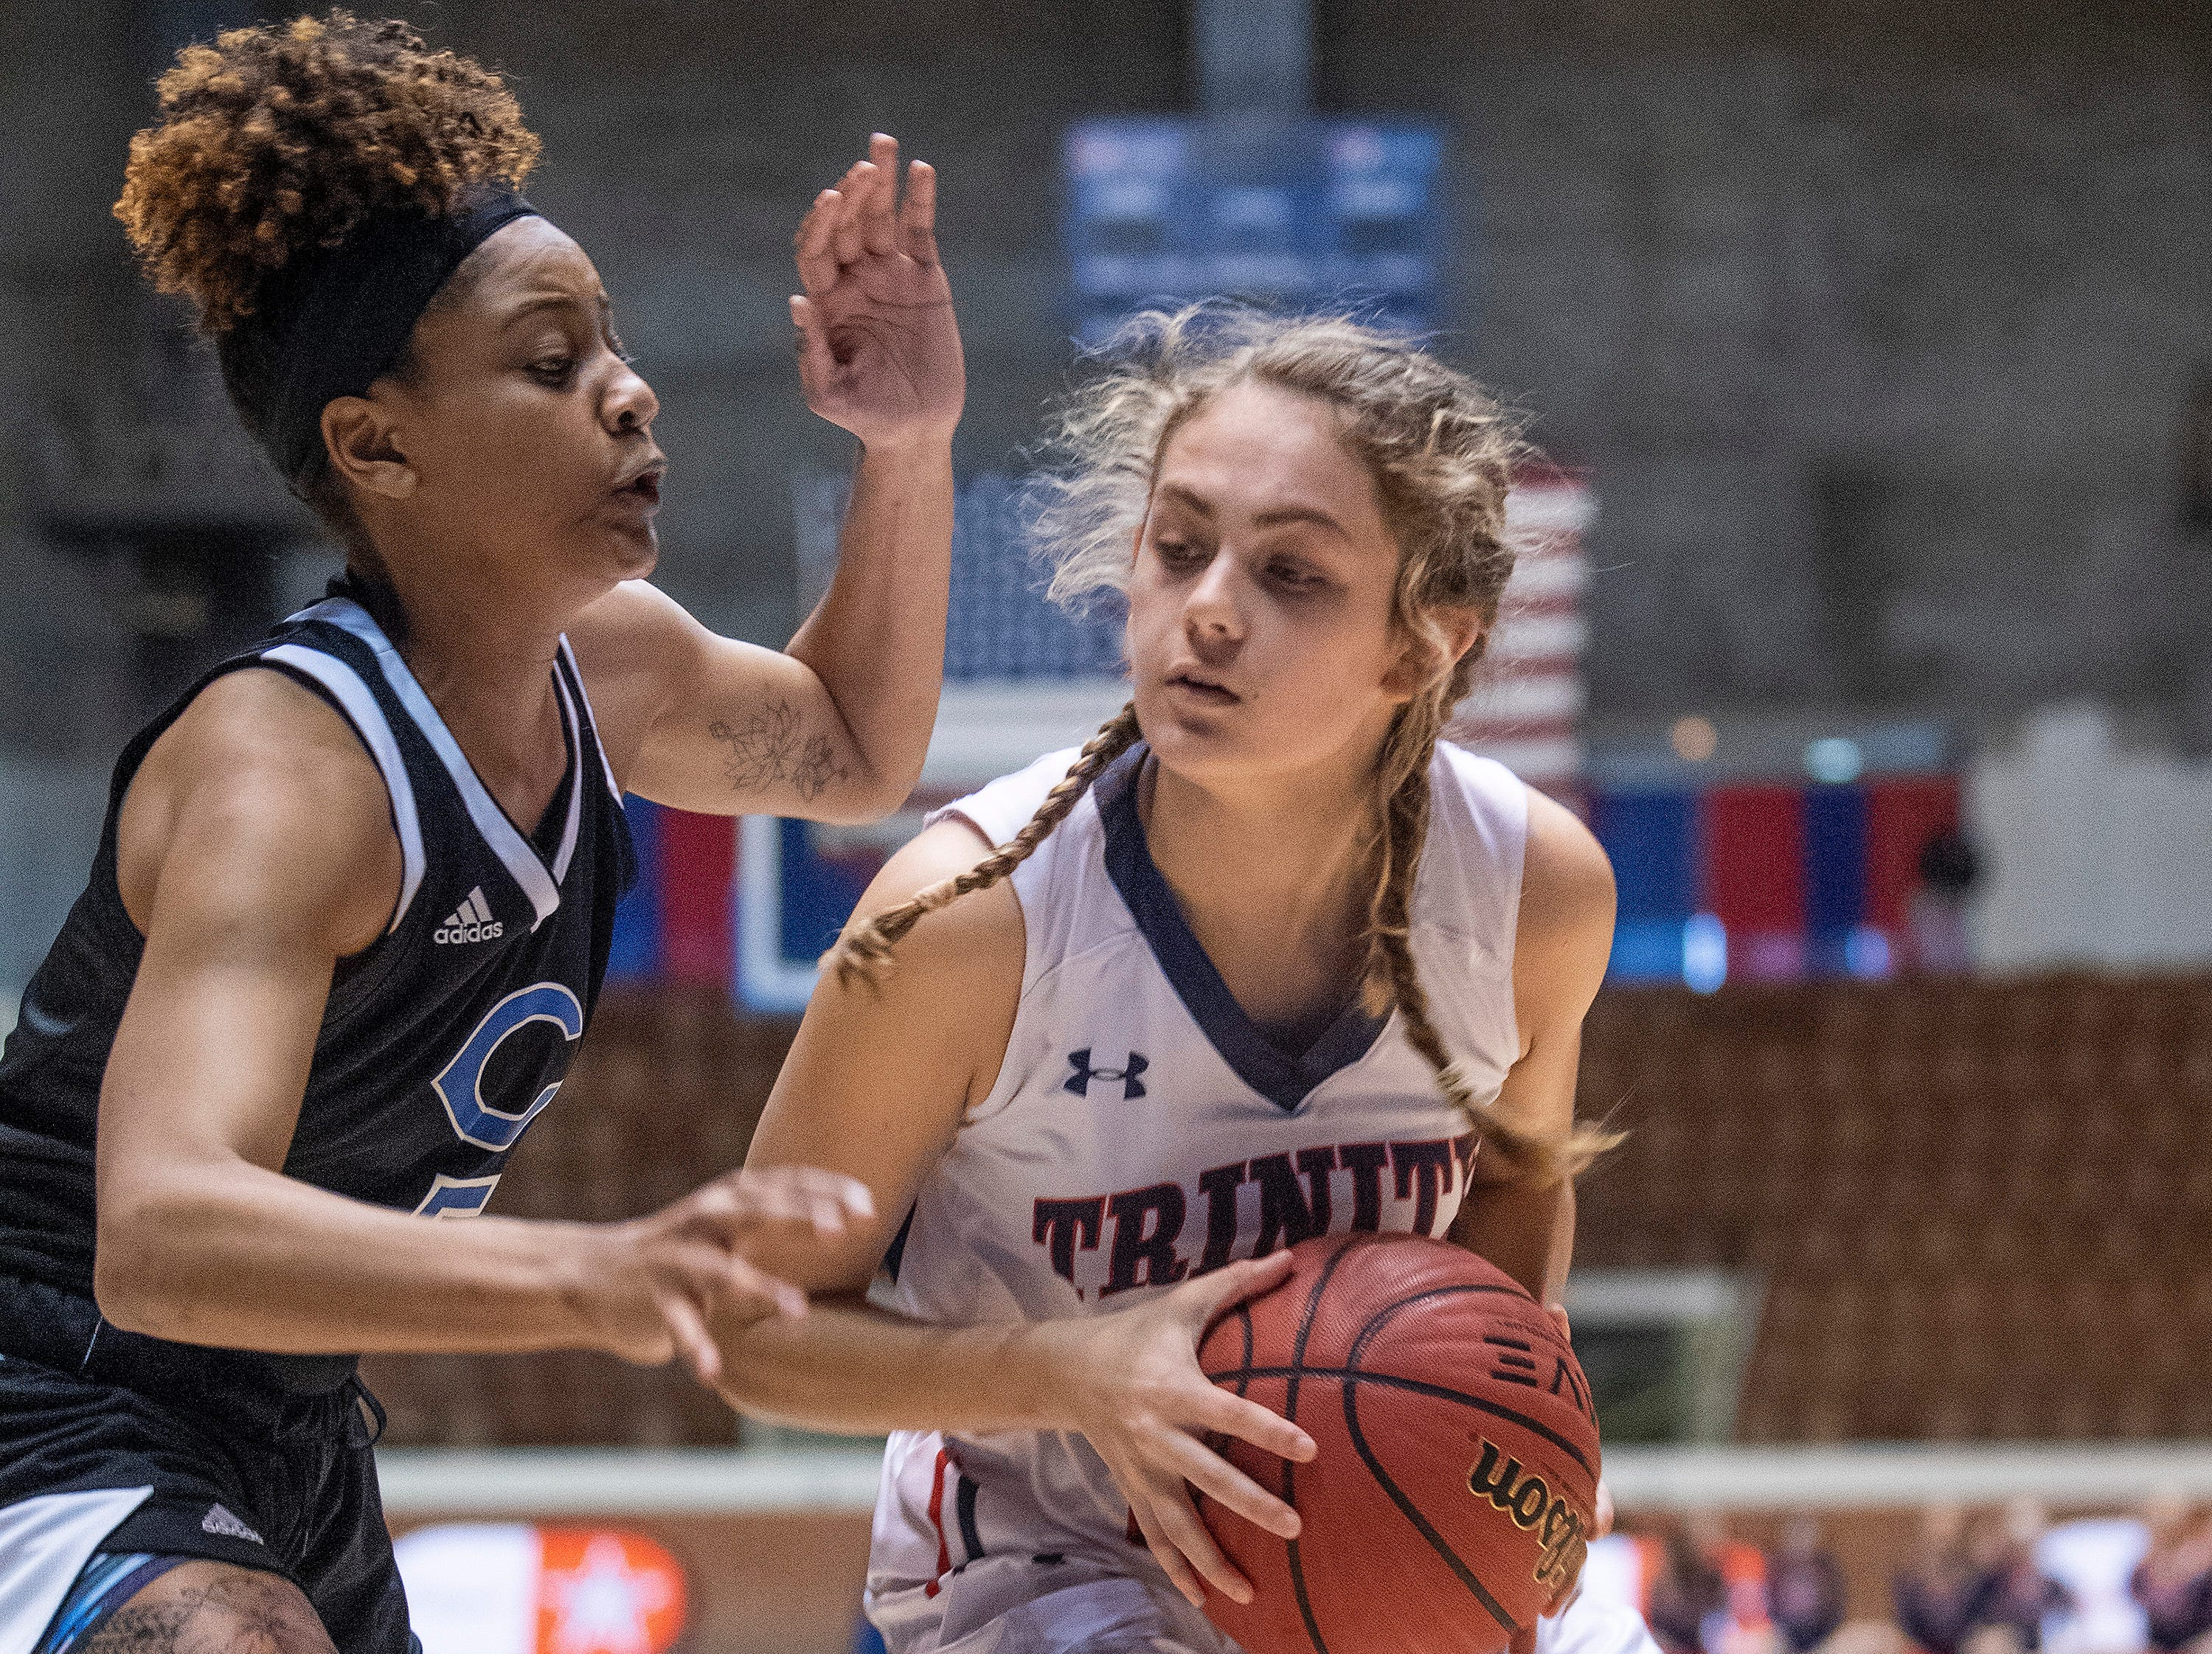 Trinity's Kaylee Peevy against Childersburg's Yamaree Gaddis in AHSAA Regional action at Garrett Coliseum in Montgomery, Ala., on Monday February 18, 2019.